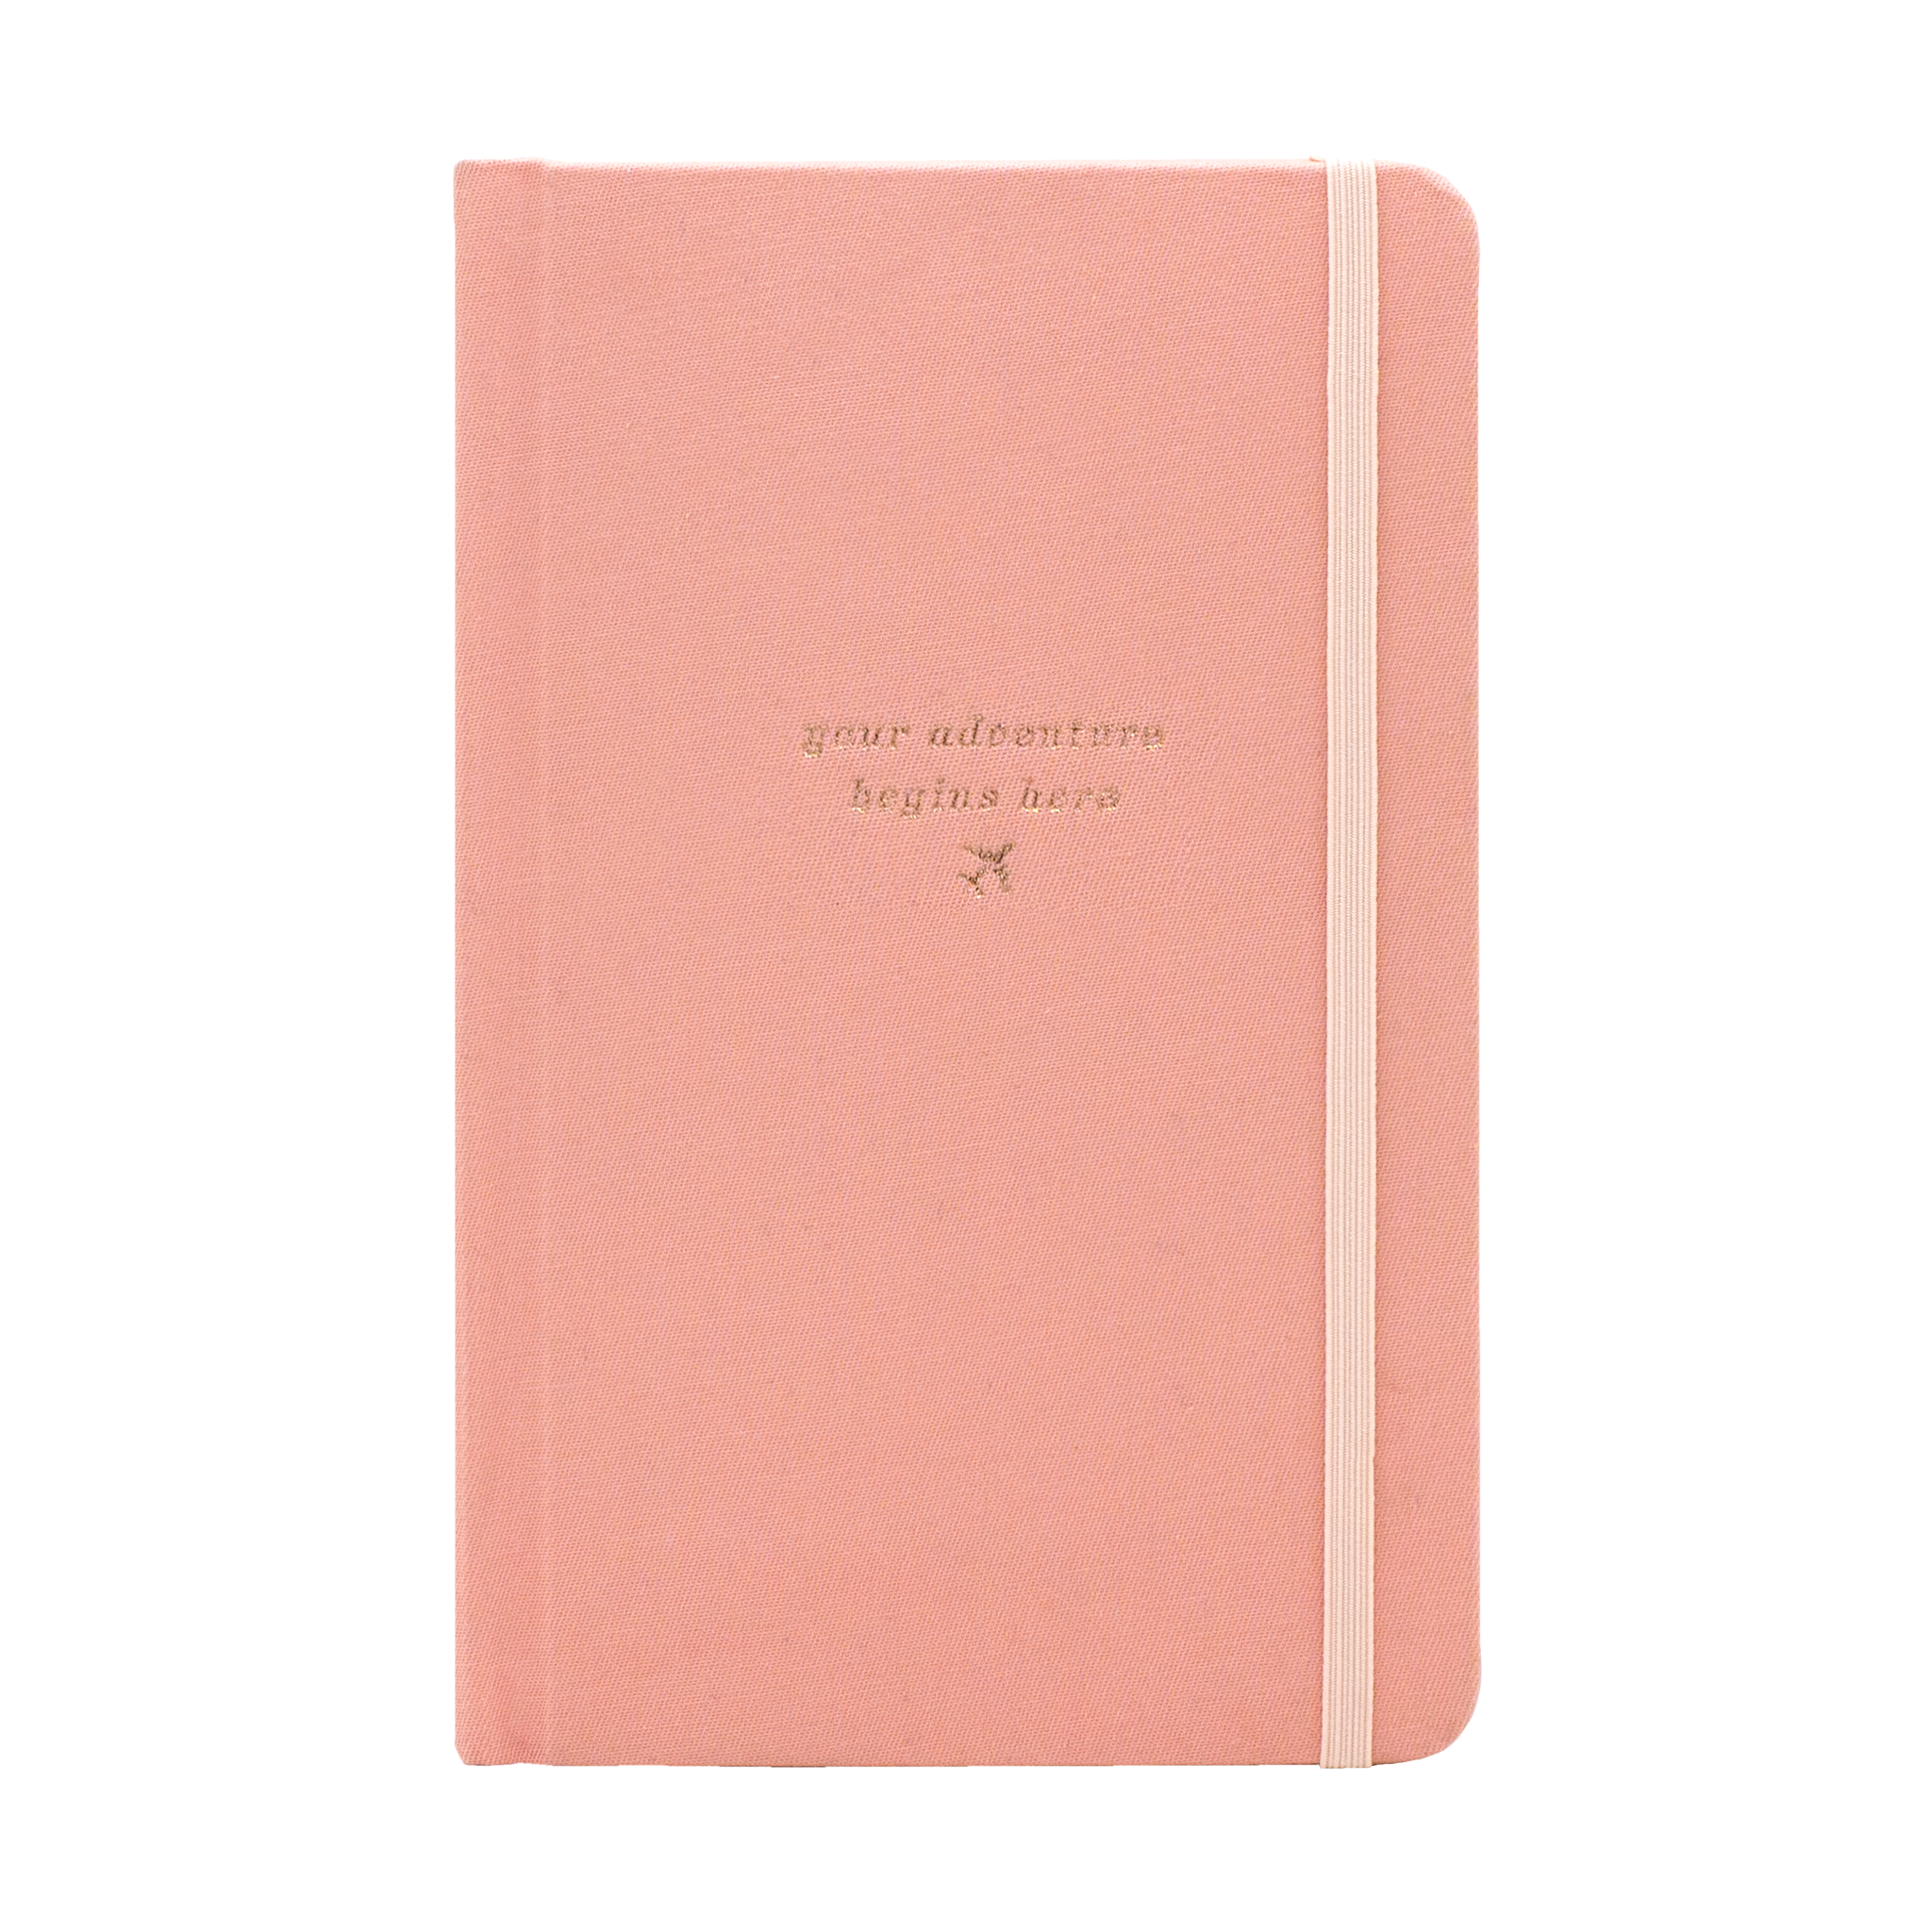 SMTWTFS Travel Journal Coral Pink - Hadron Epoch